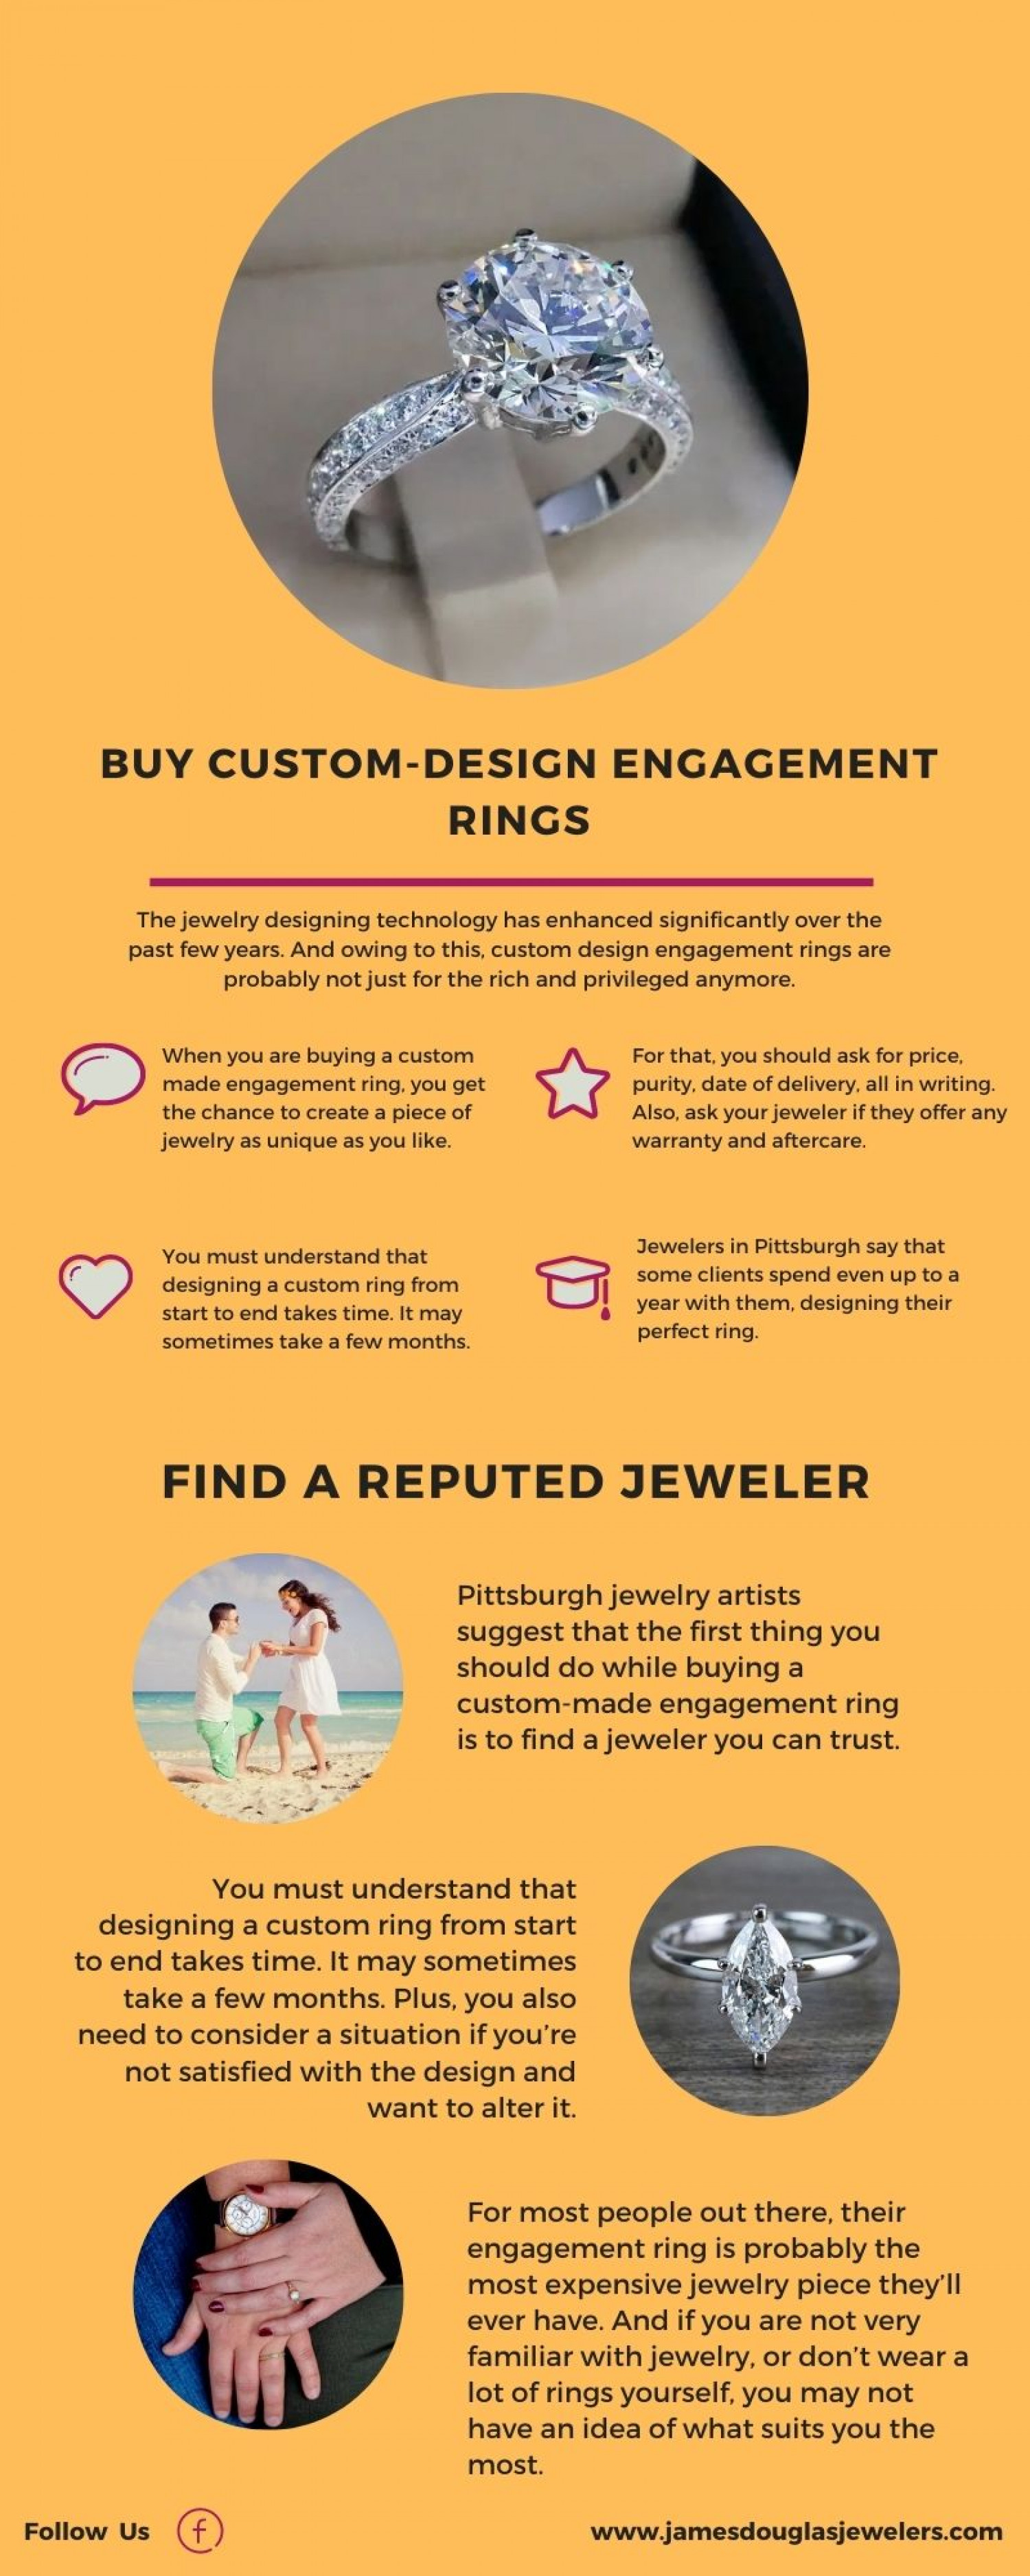 Tips to Buy Custom-Design Engagement Rings Infographic